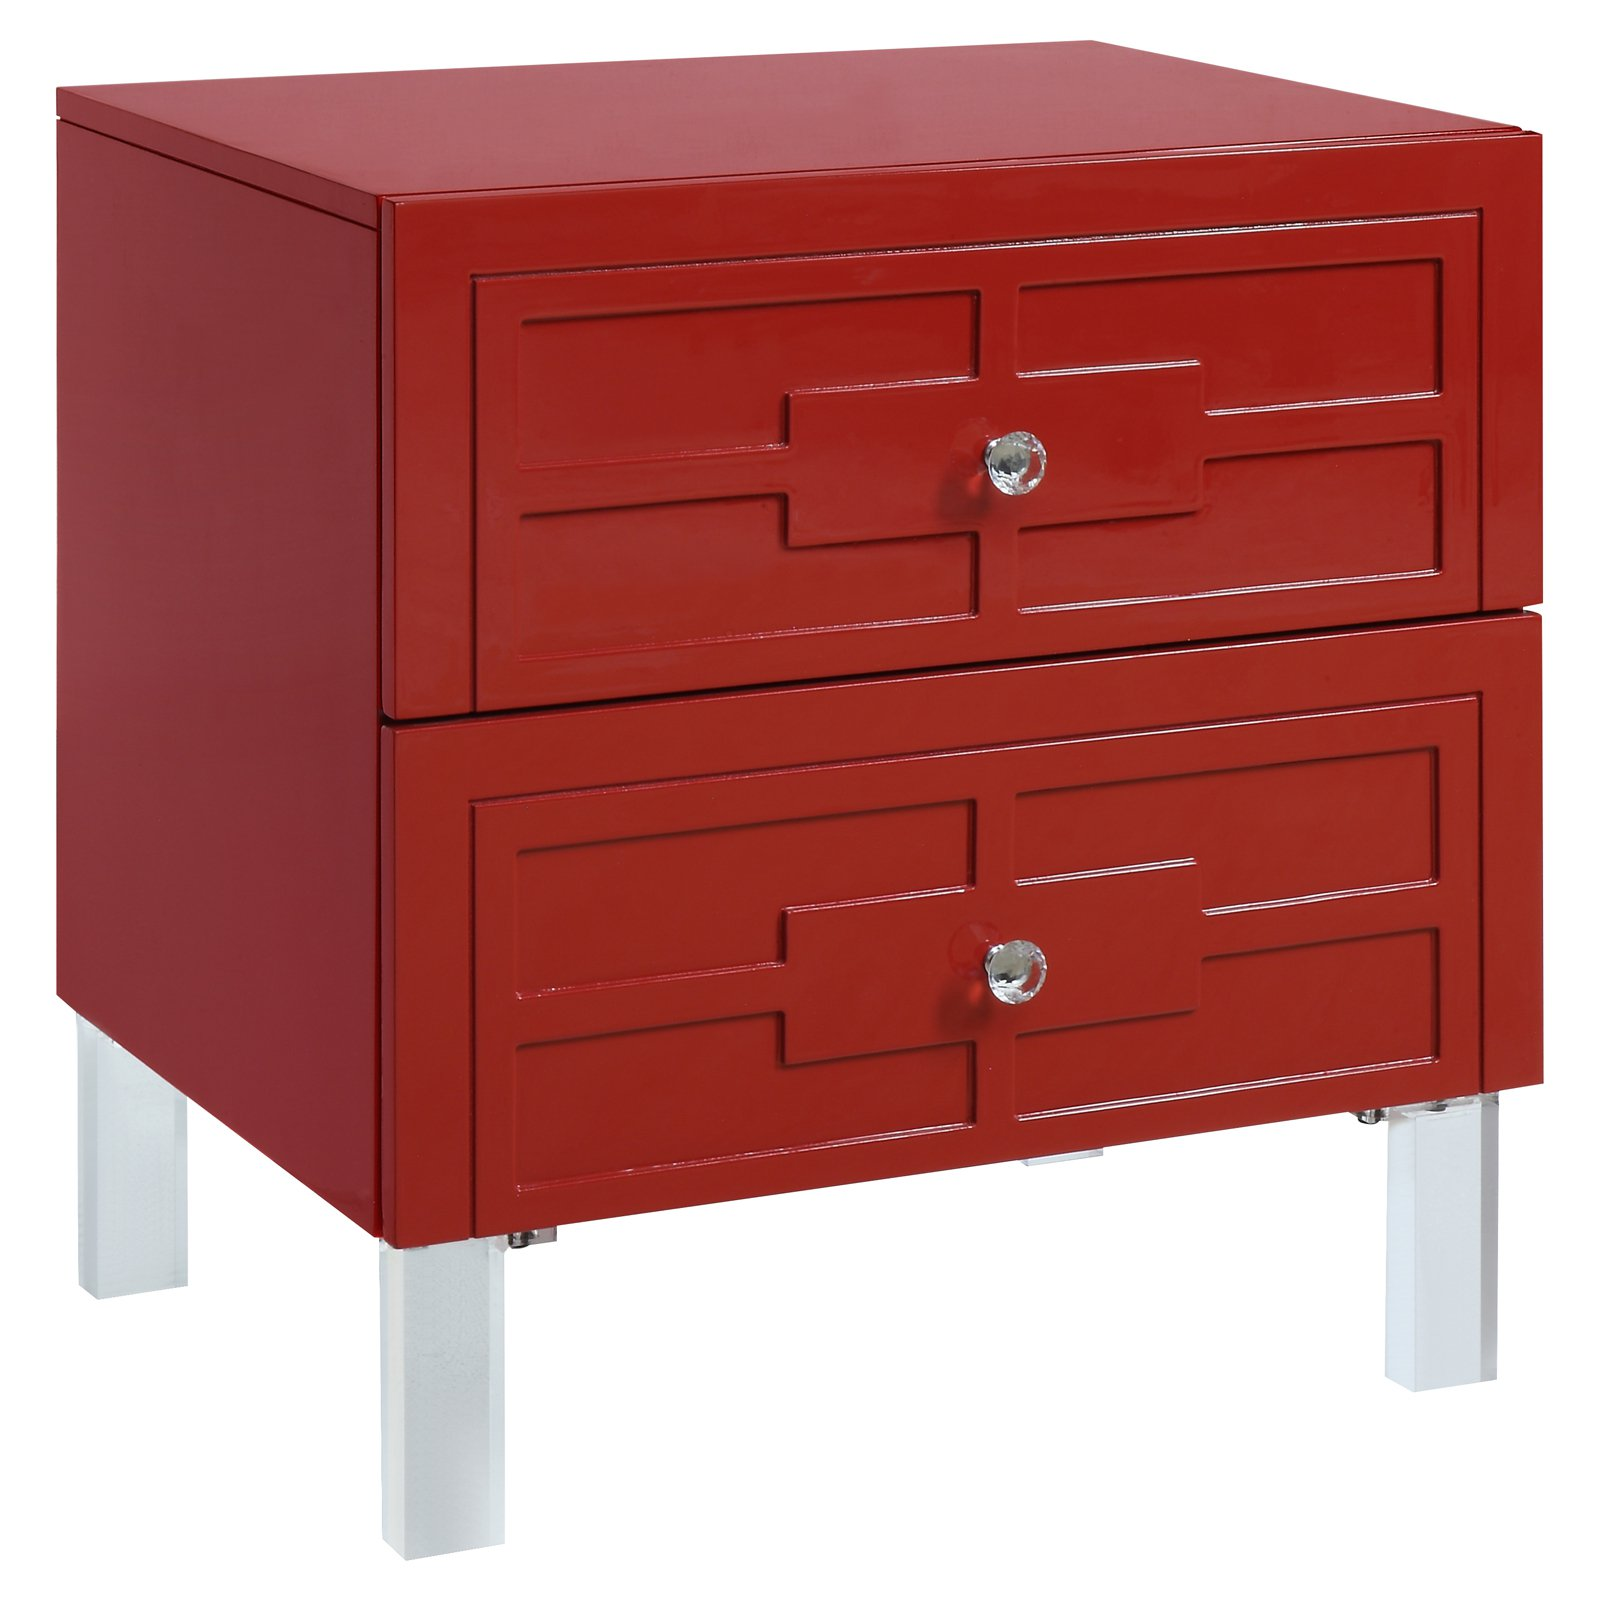 Furniture of America Ellis Contemporary Side Table